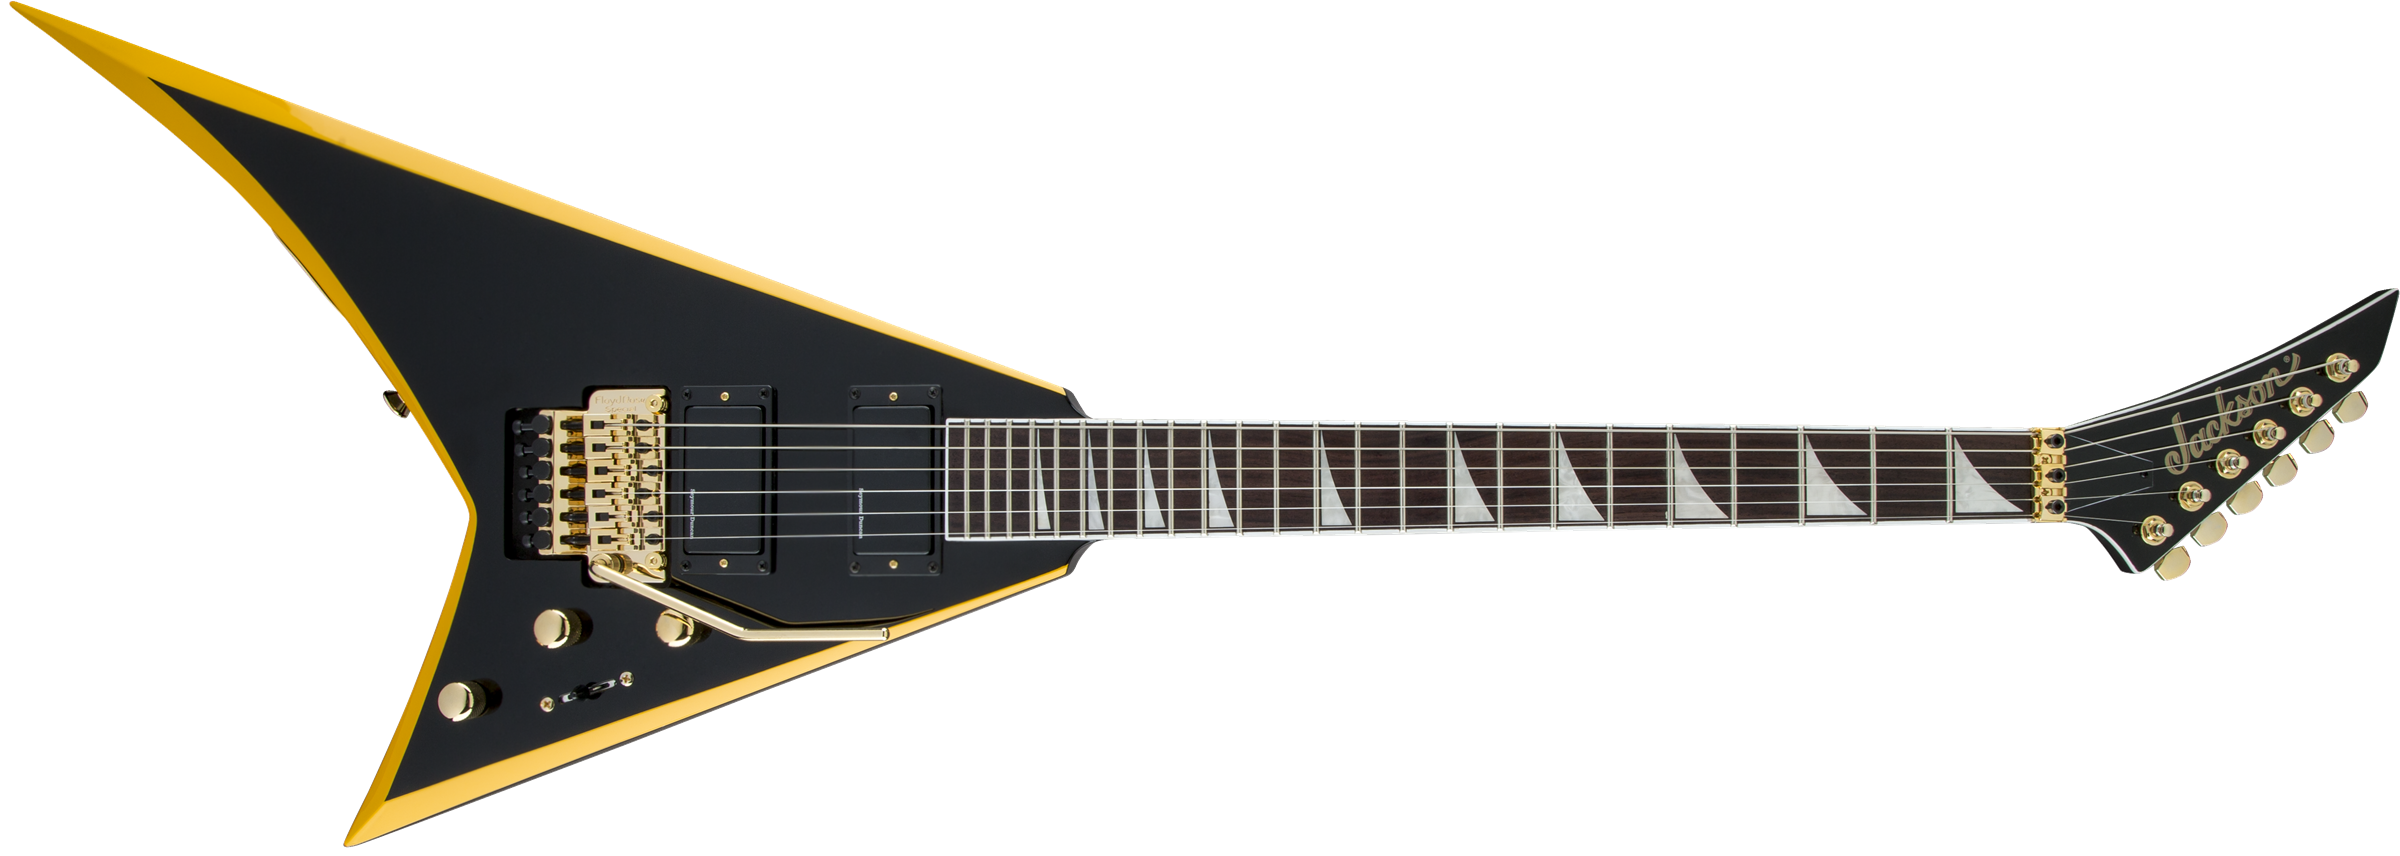 JACKSON X Series Rhoads RRX24, Rosewood Fingerboard, Black with Yellow Bevels